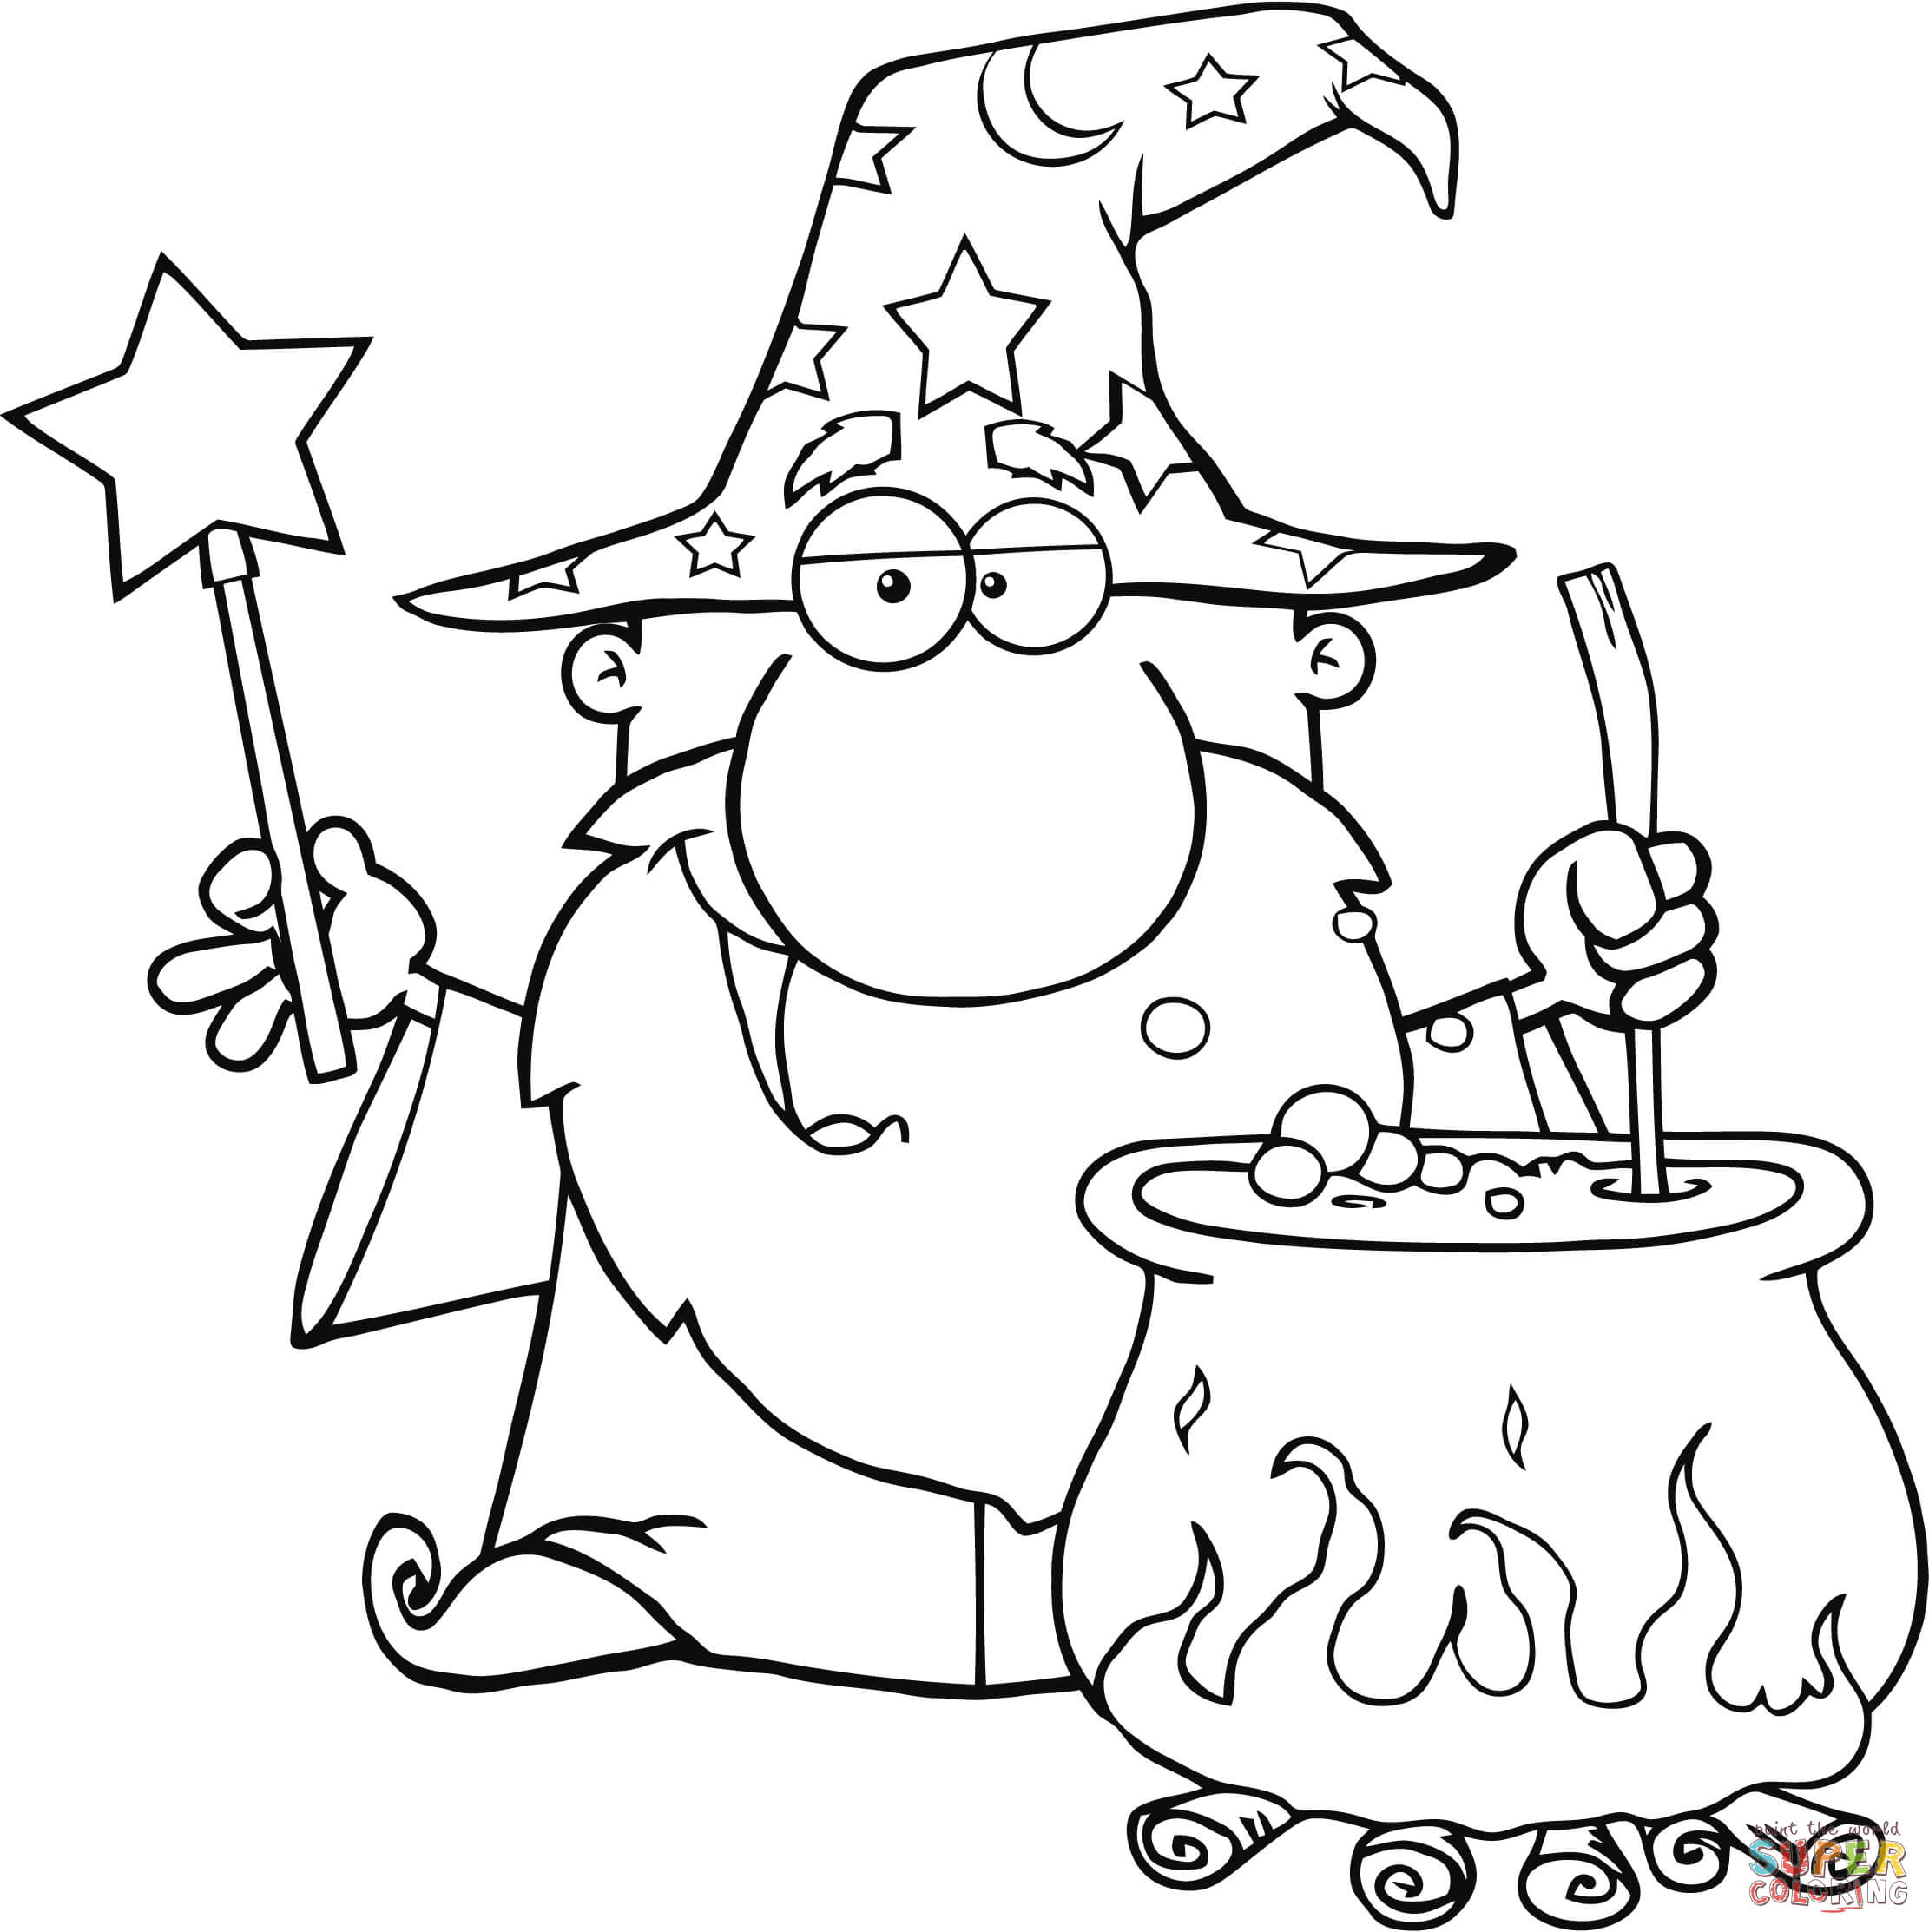 wizard coloring pages wizard with book coloring page free printable coloring pages pages wizard coloring